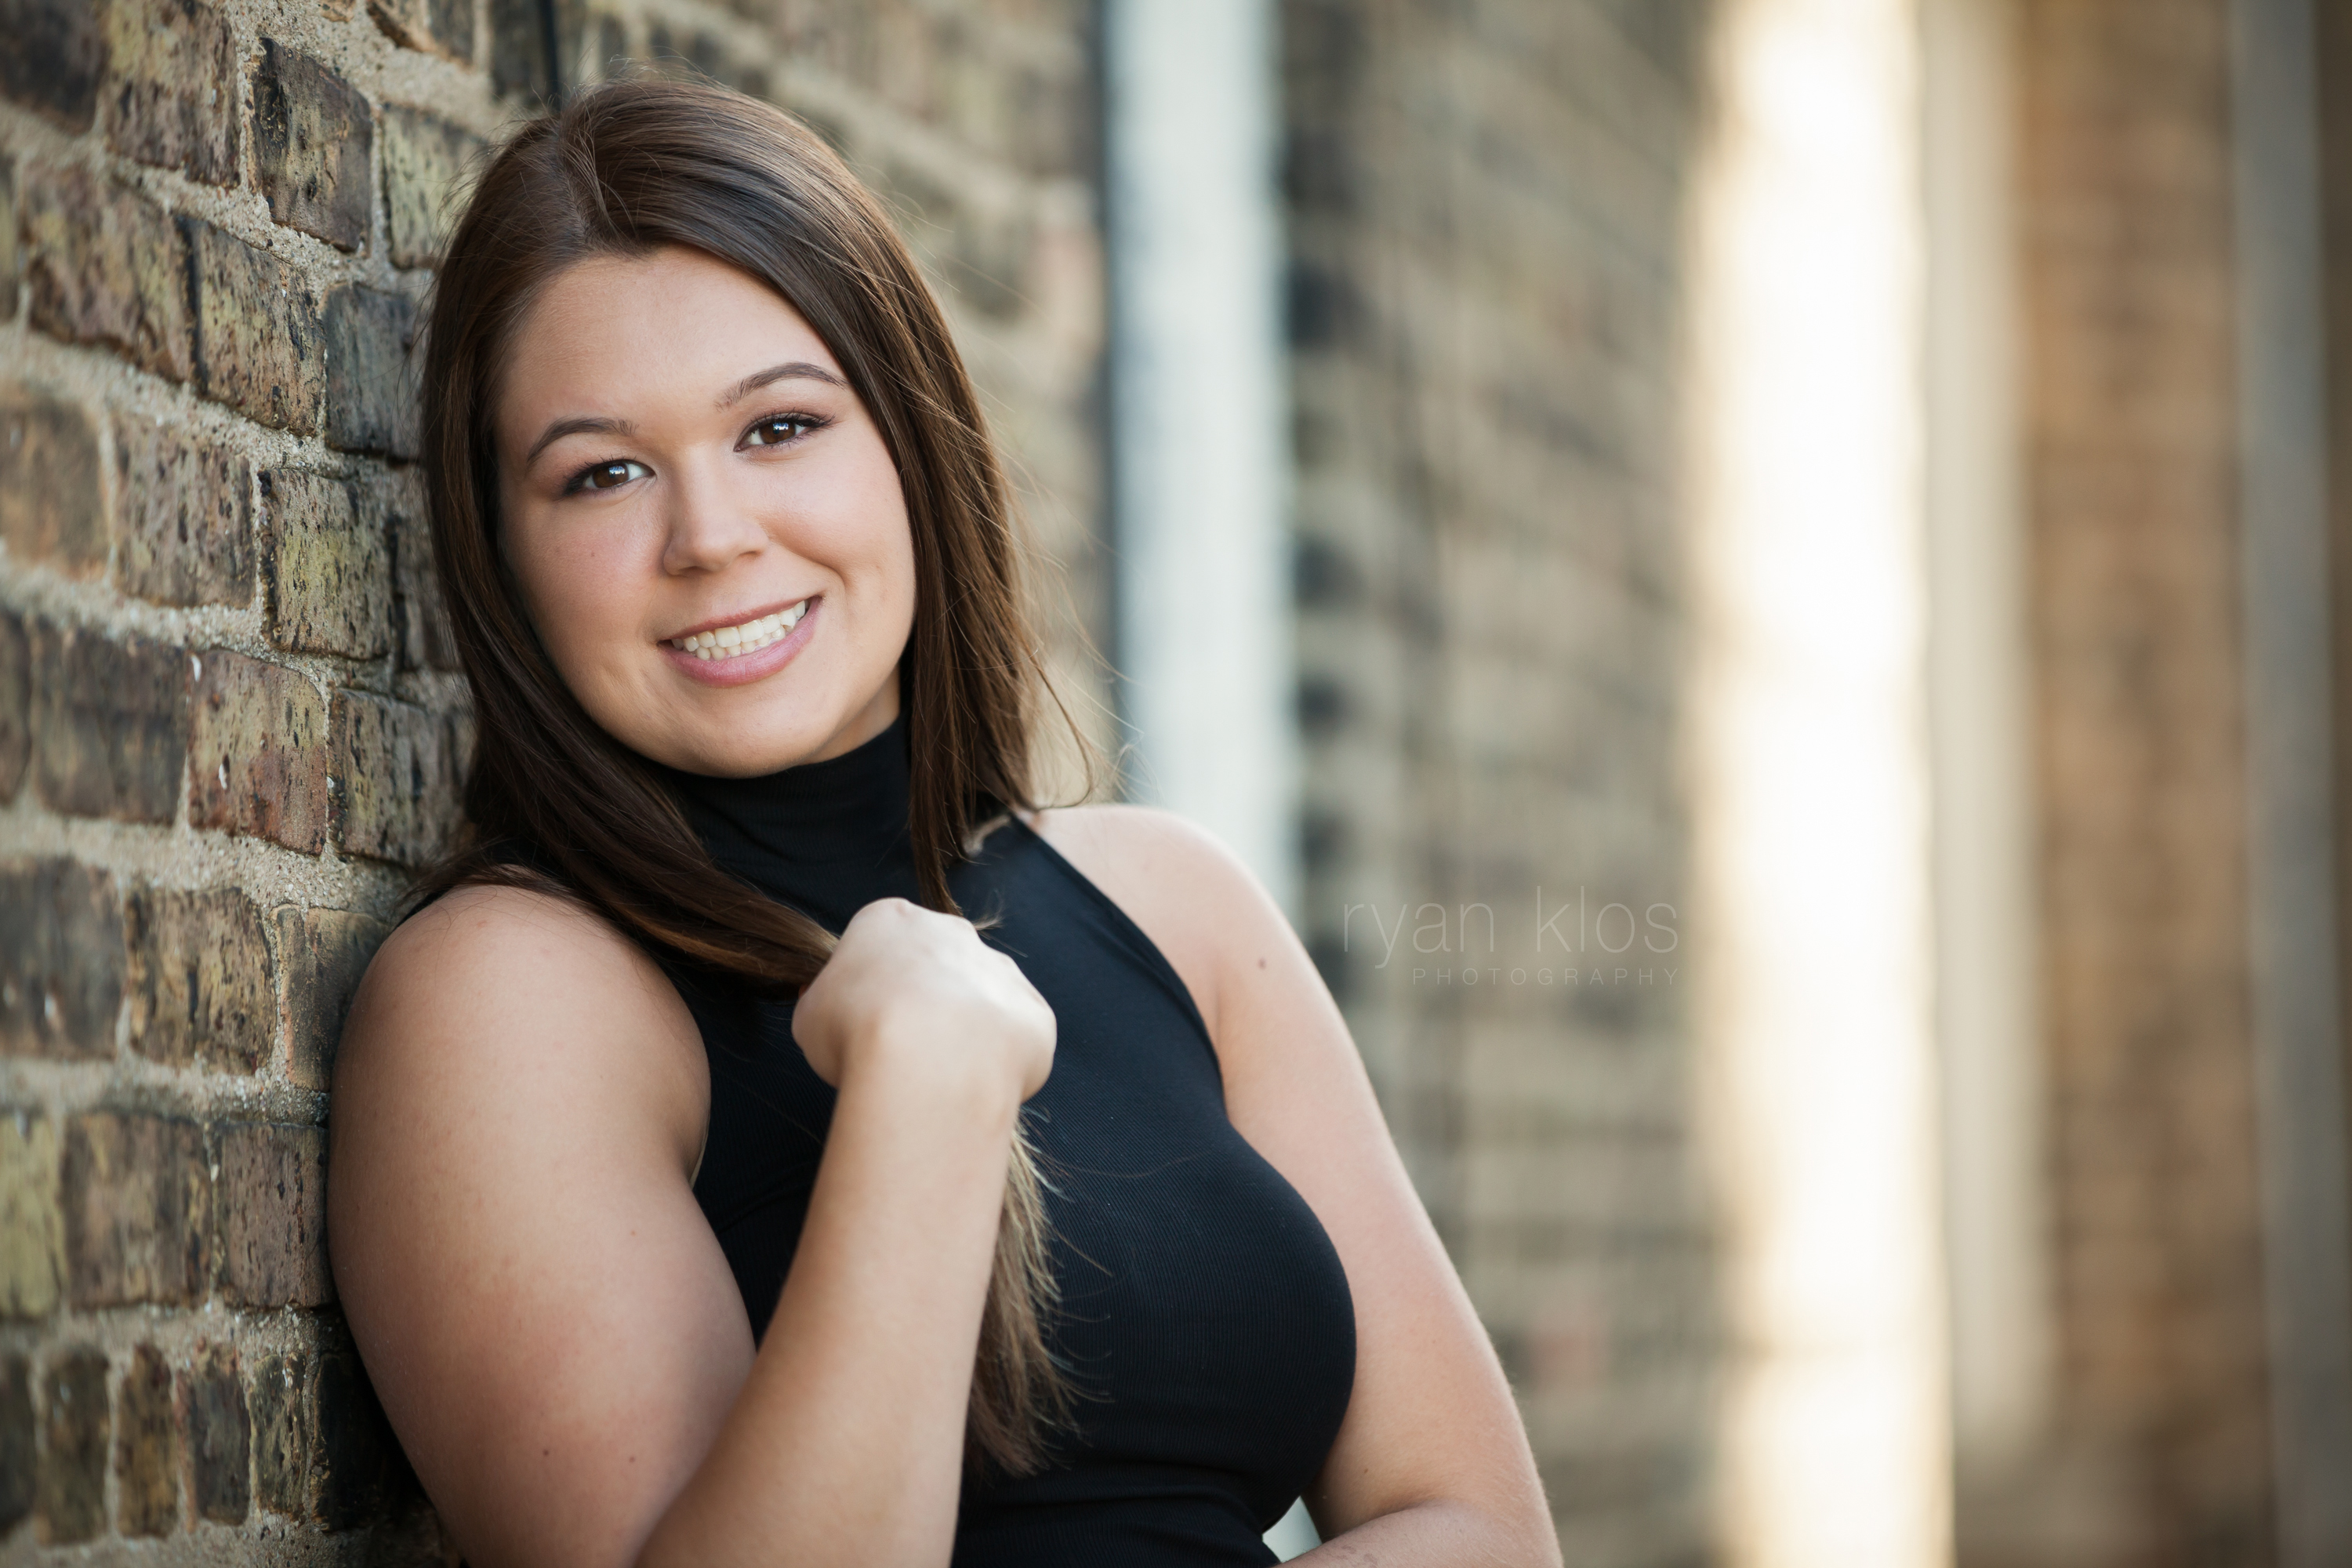 Belvidere High School Senior Portraits by Ryan Klos